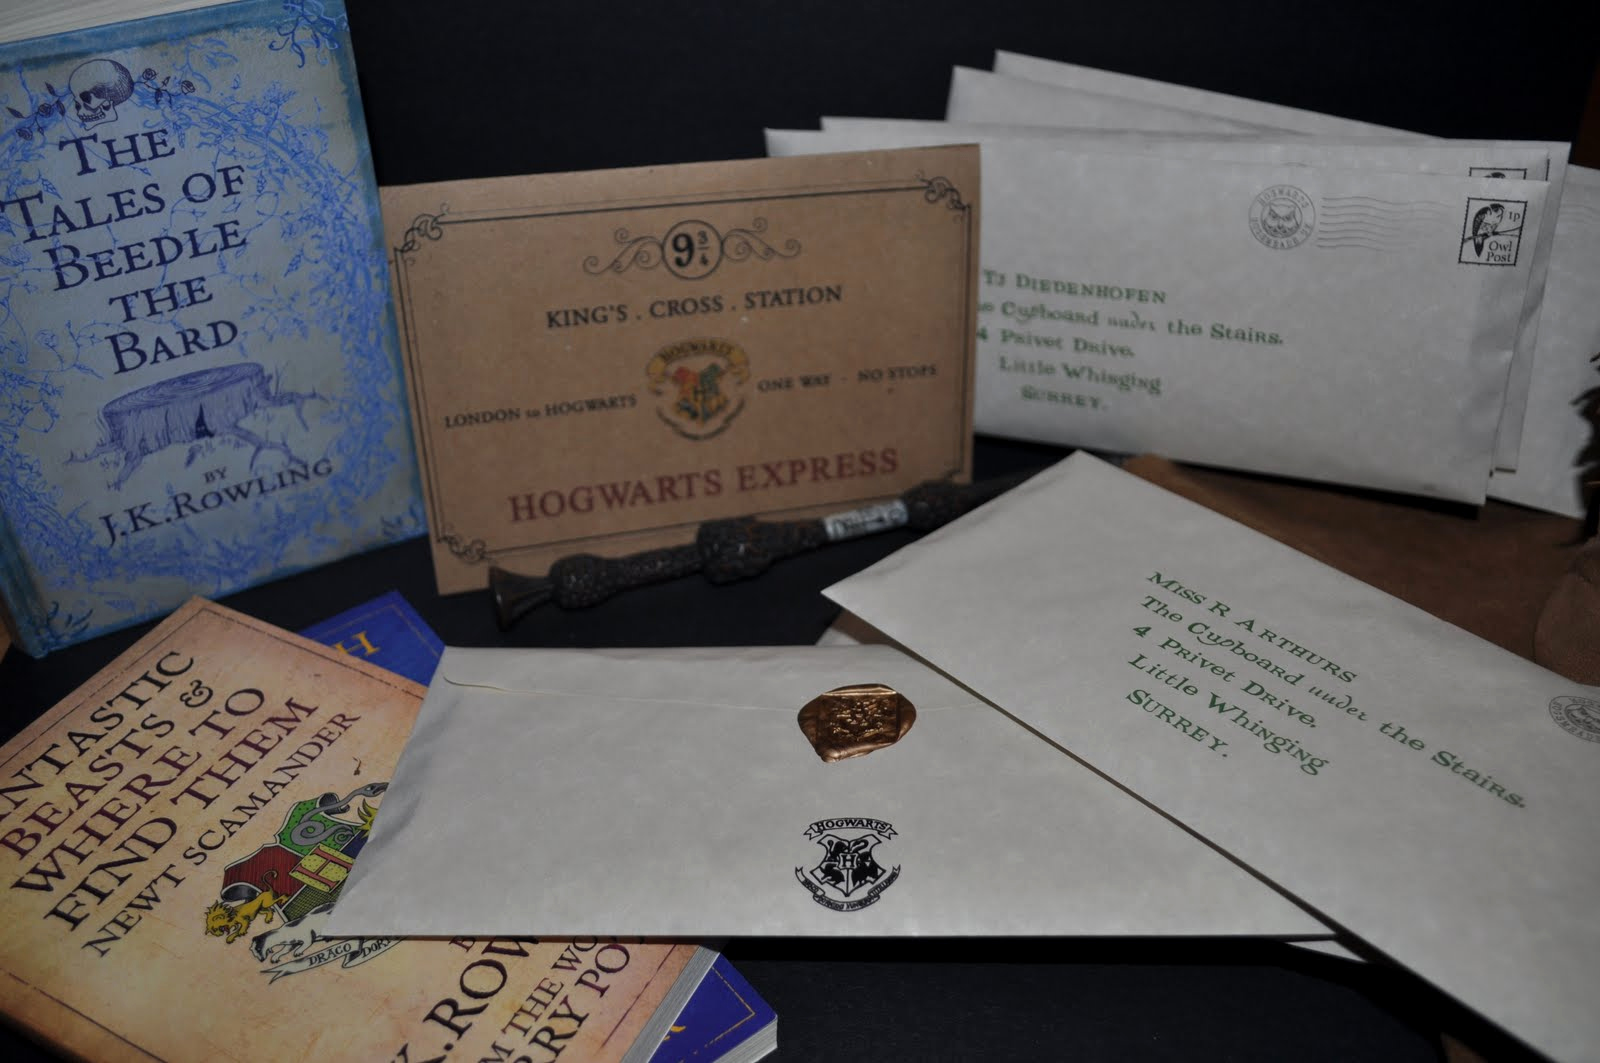 Harry Potter Invitation to Hogwarts New Serendipity soiree Paperie event Styling Design Sneak